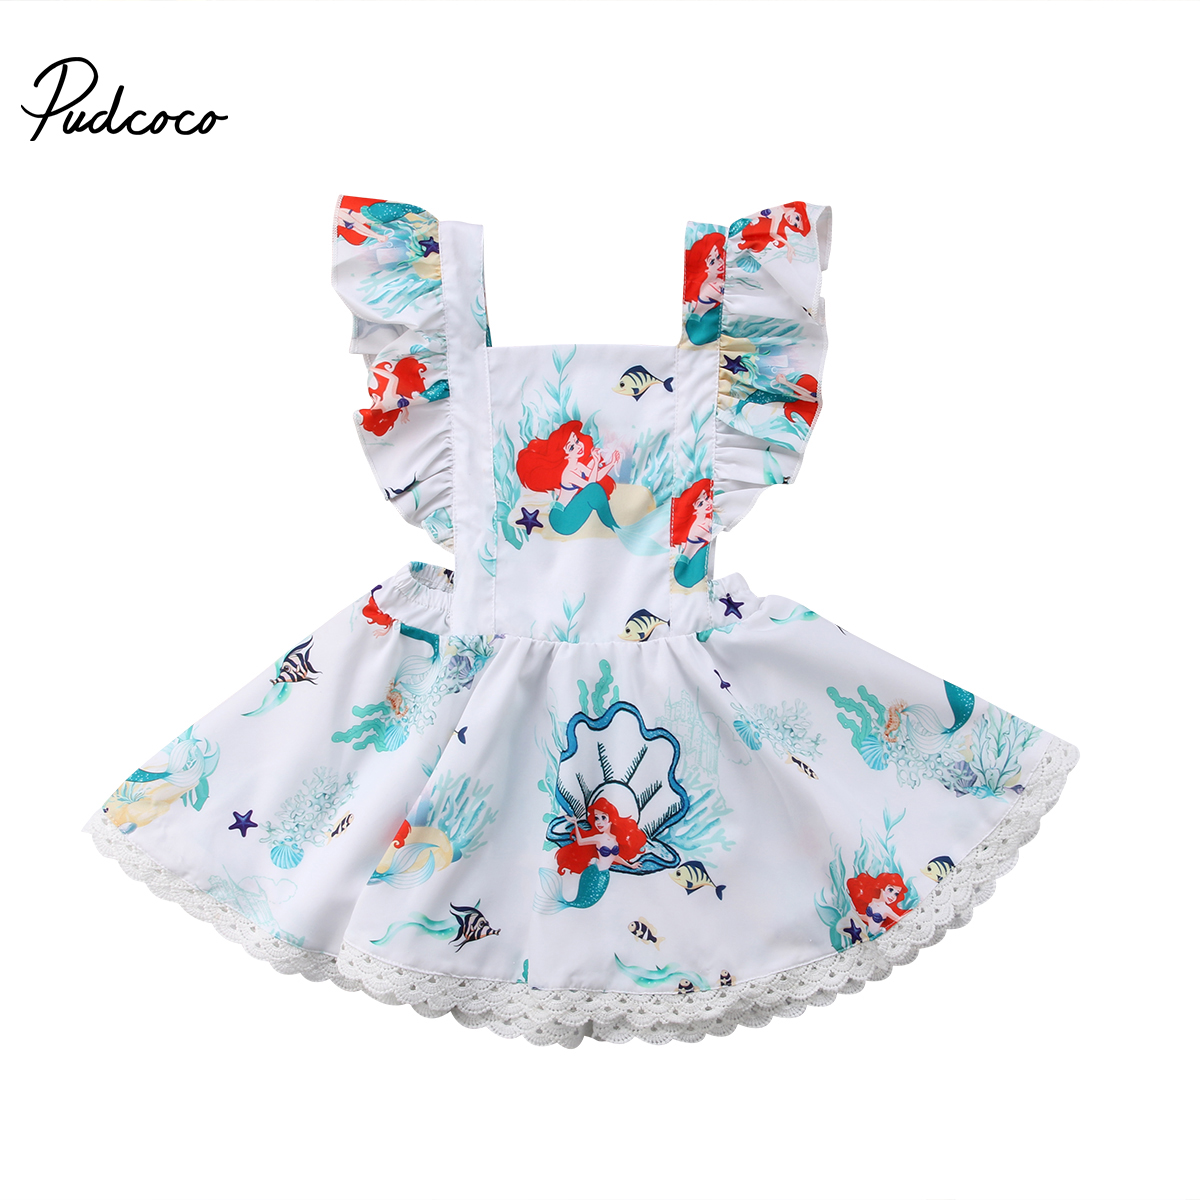 Pudcoco Summer Toddler Baby Kids Girls Dresses Mermaid Backless Cartoon Princess Party Dress Sundress Cotton Elegant Dress 0-5T teenage princess girls dresses 2018 cotton summer green purple for striped party little girls dress long kids sundress